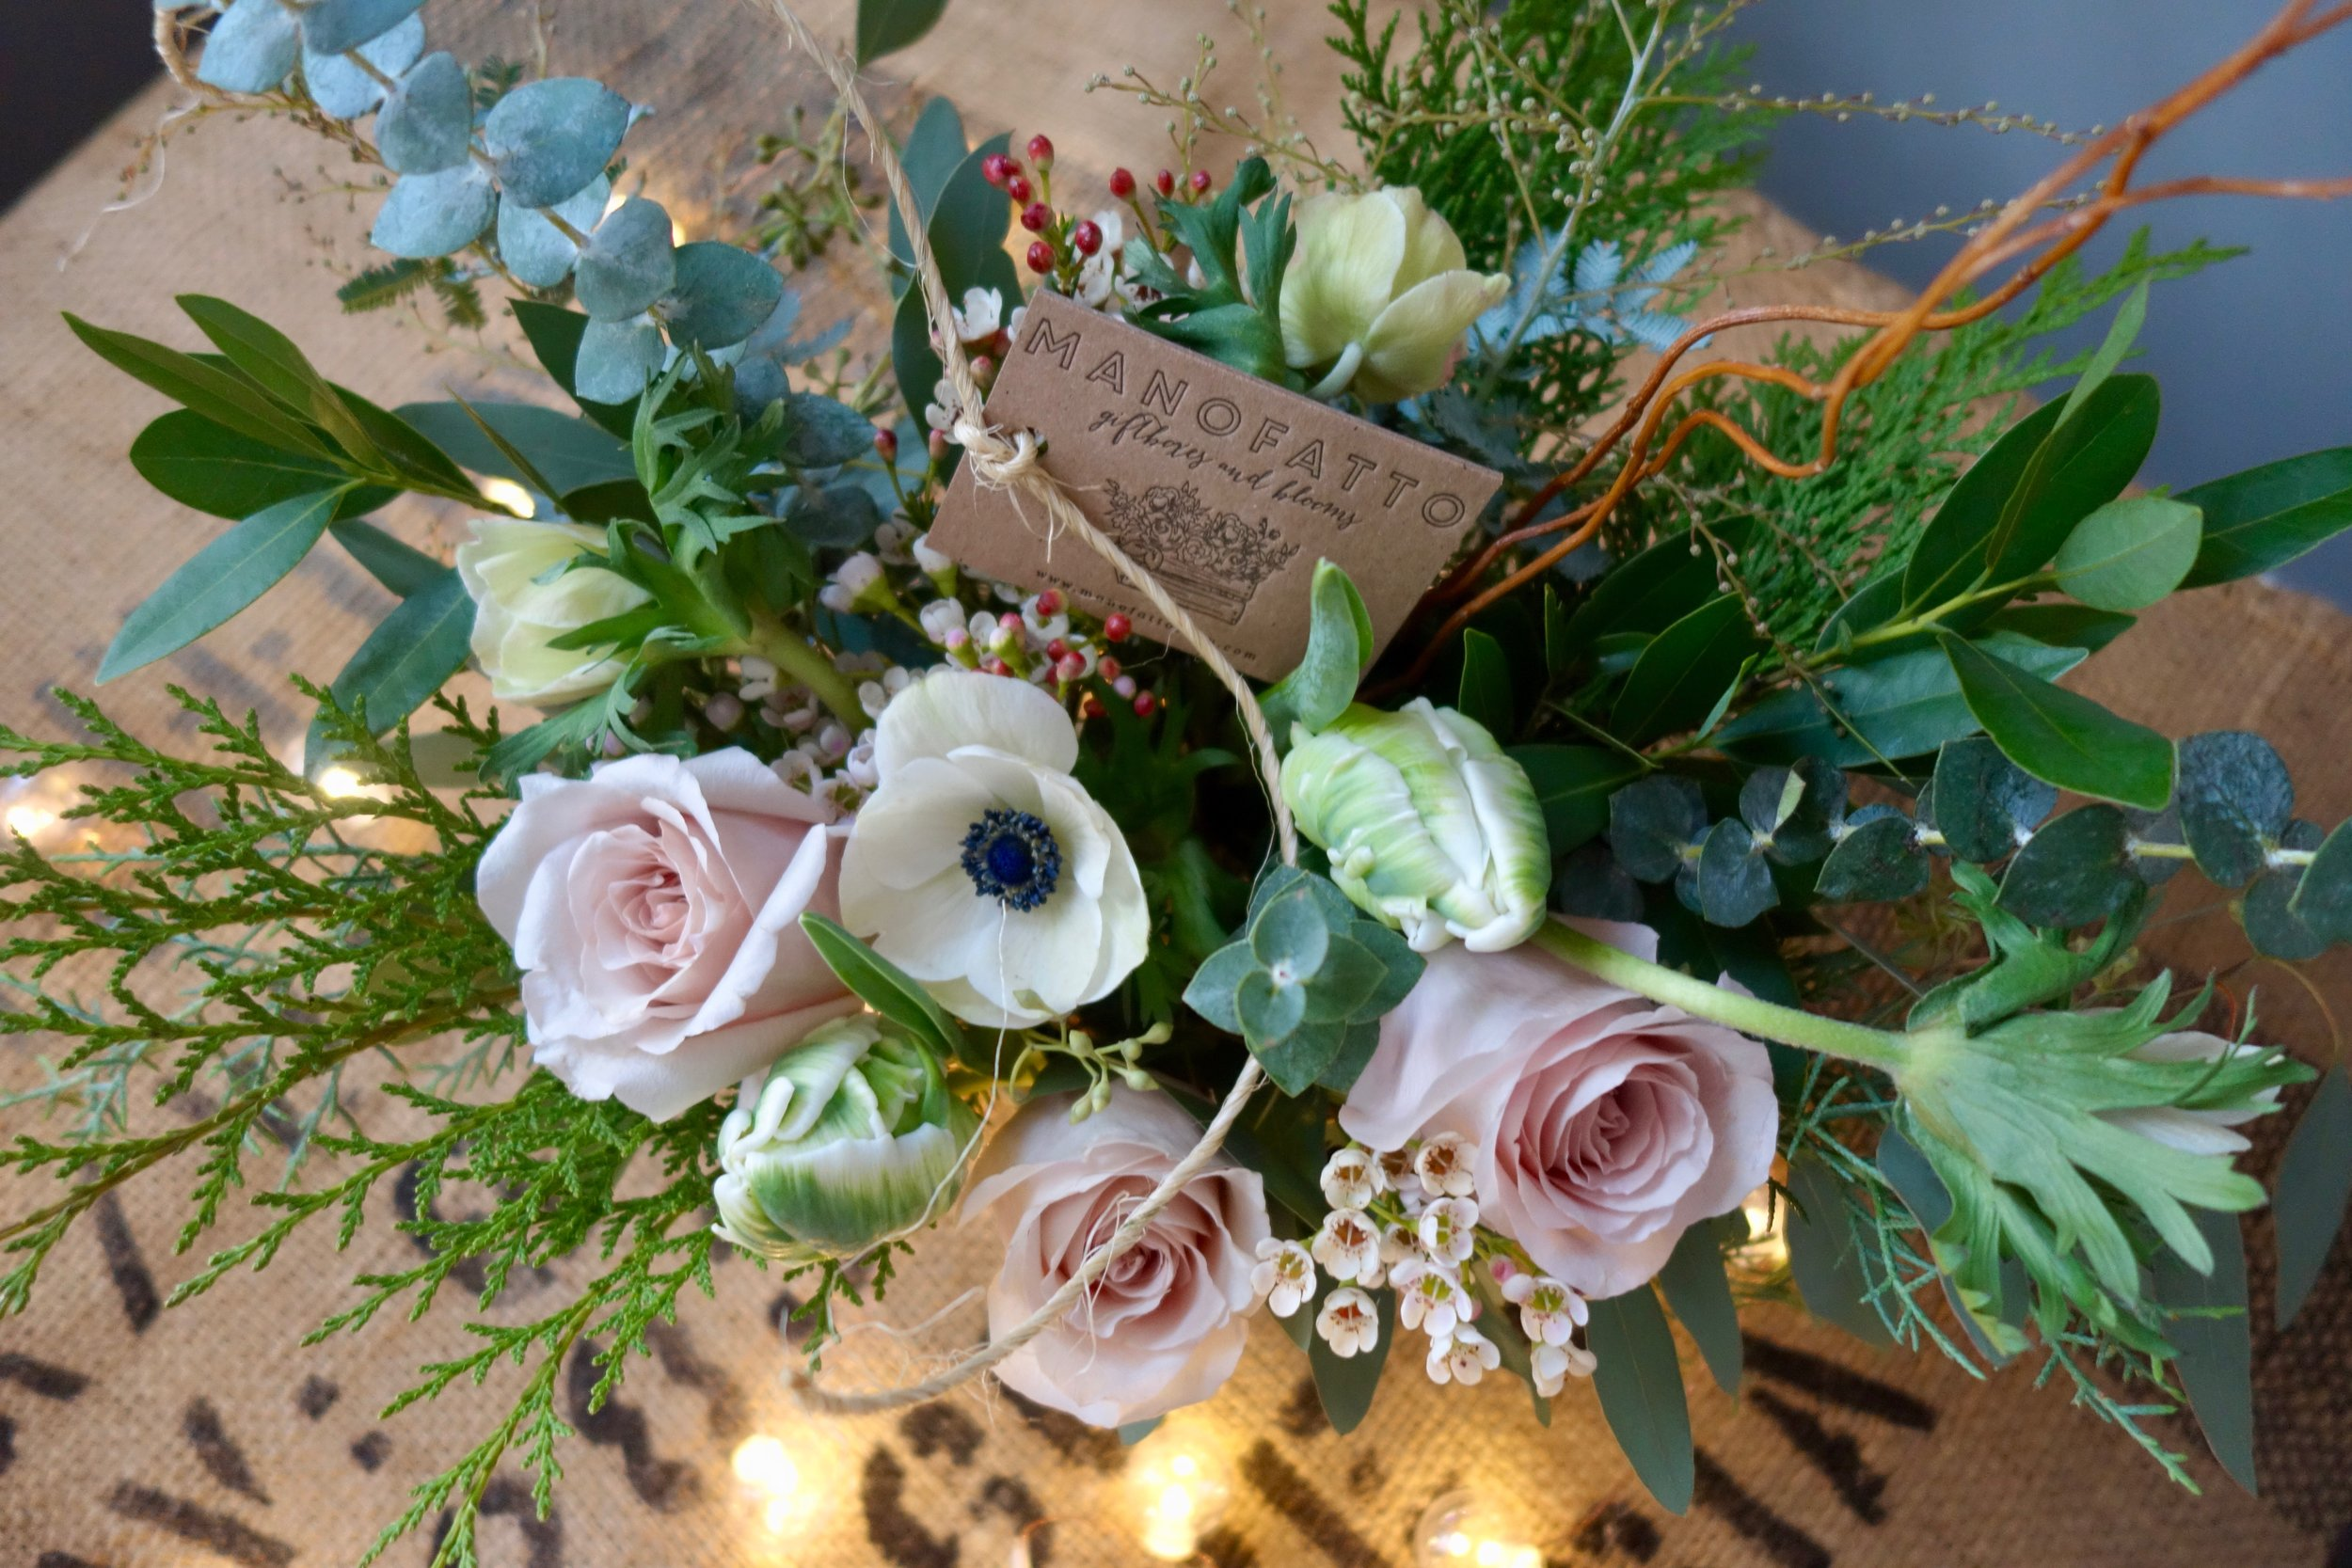 Happy Blooms, starting at $65